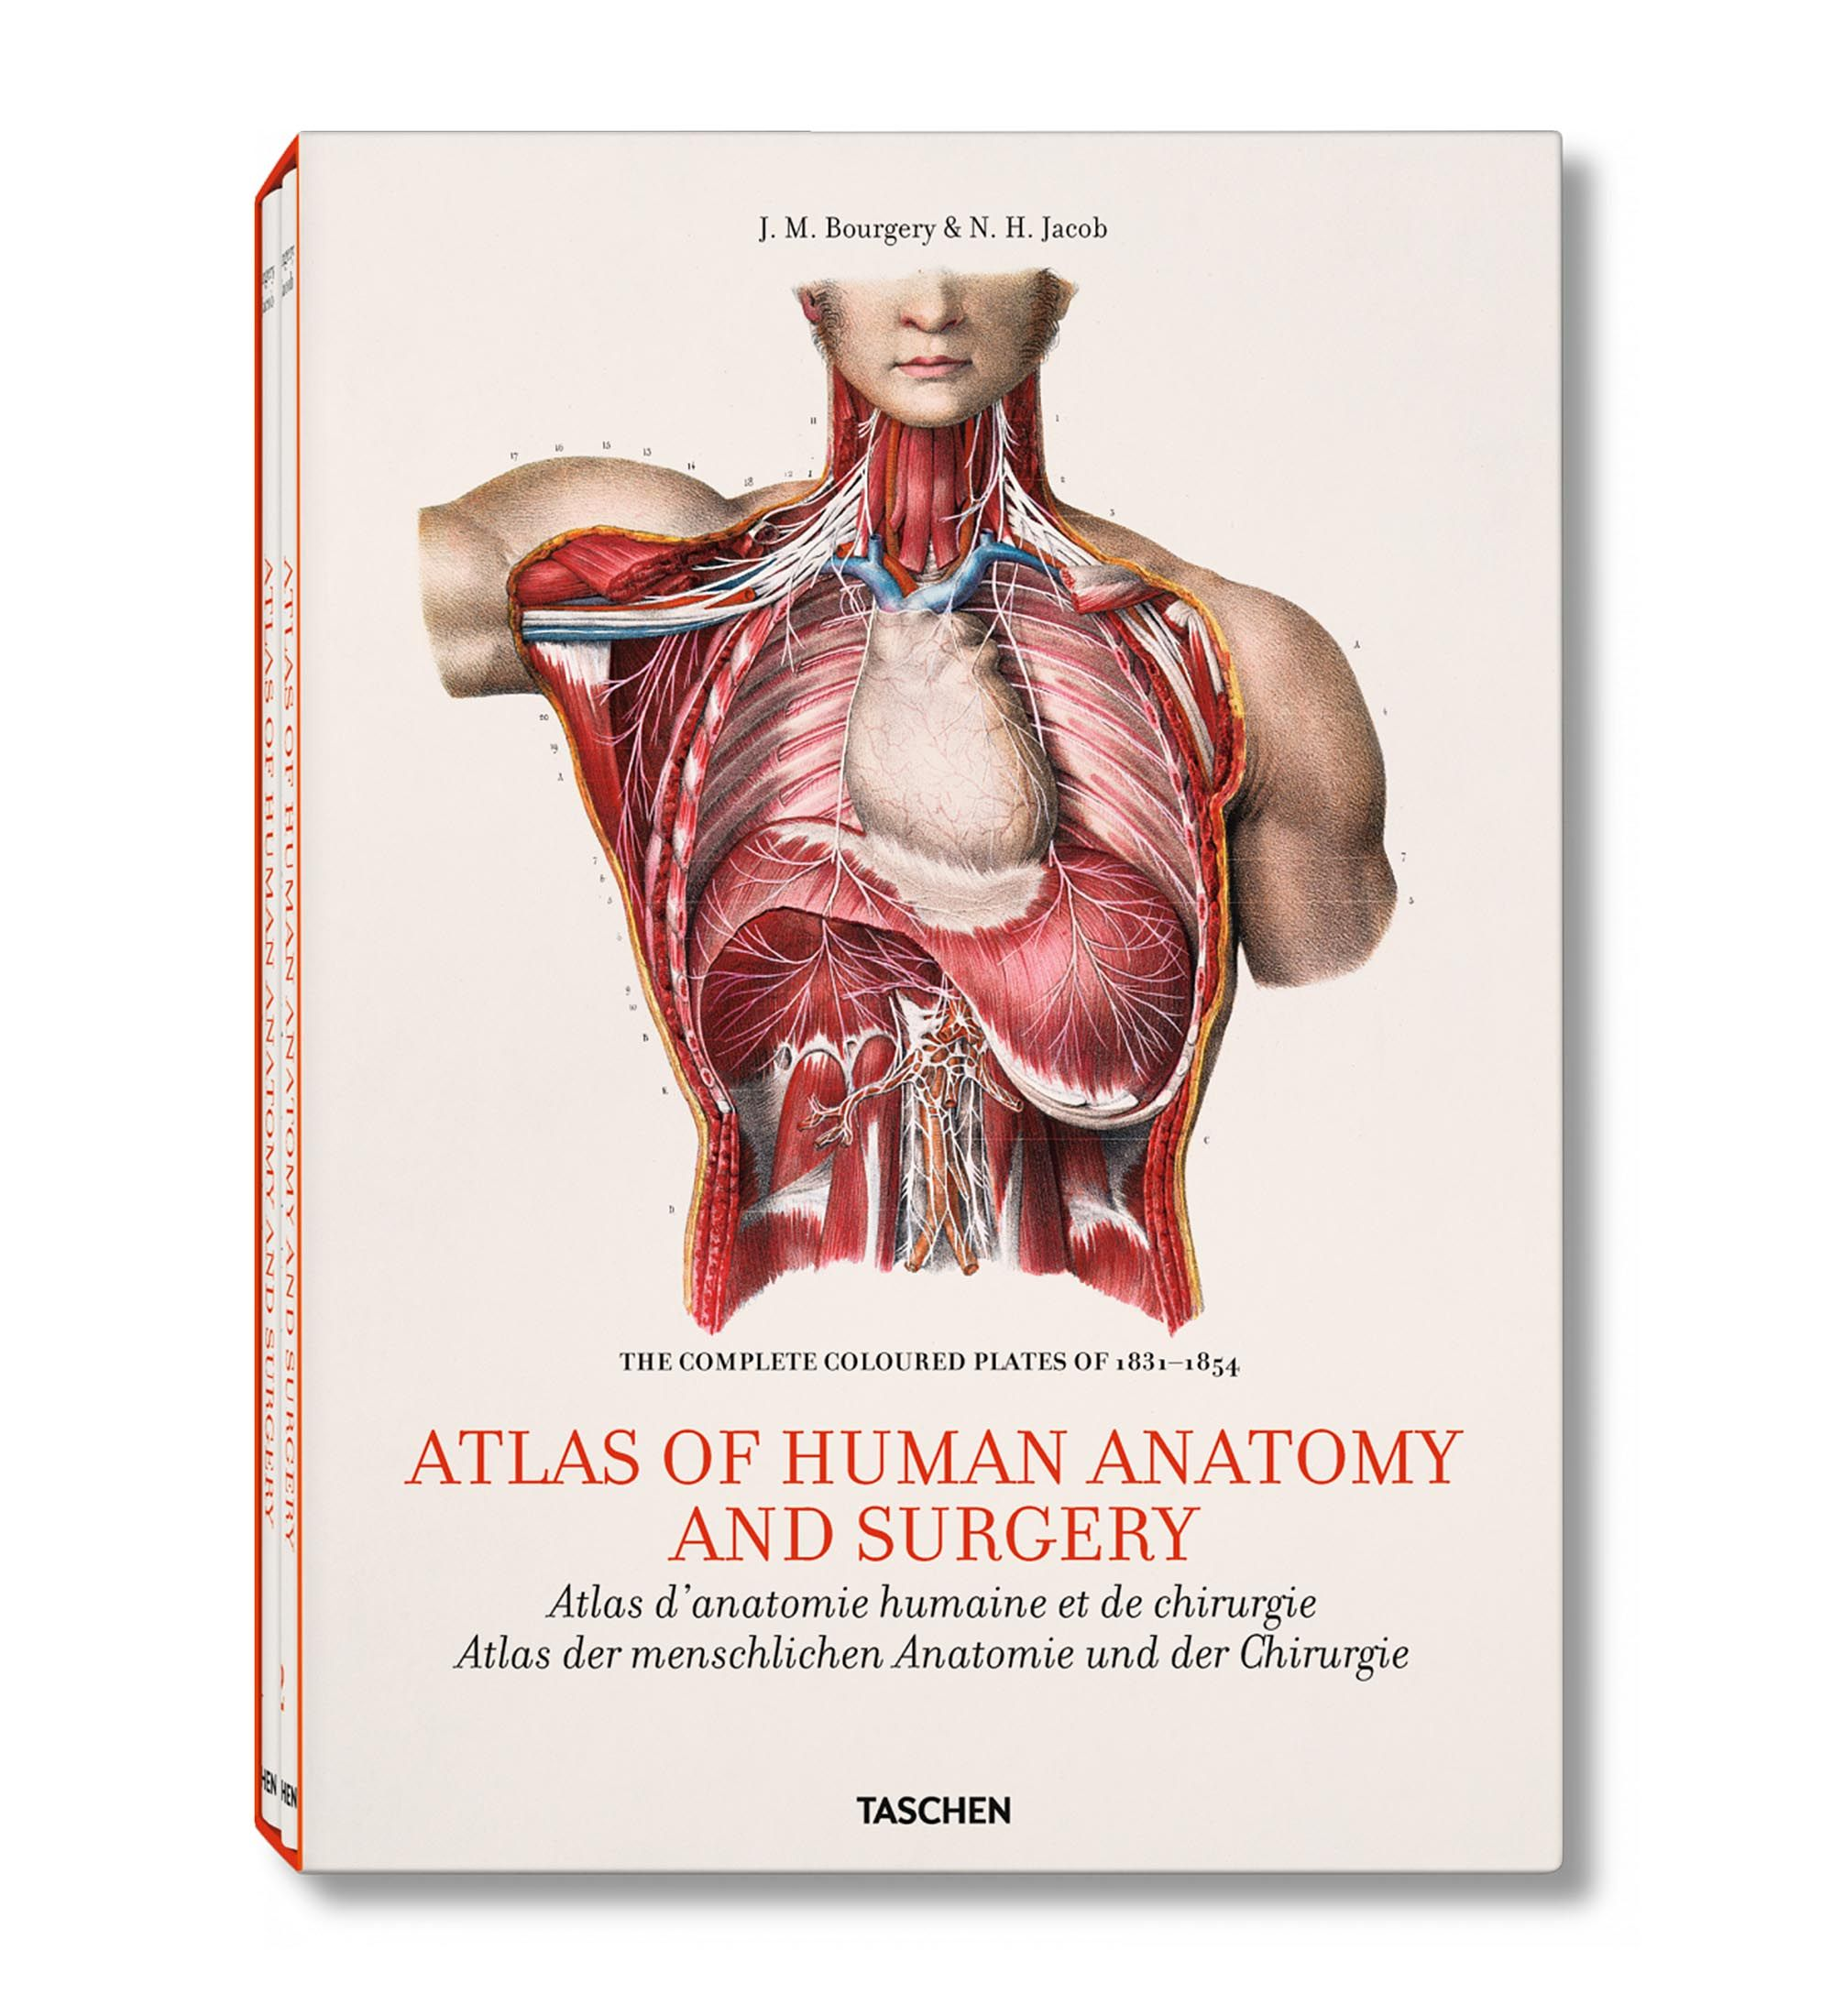 Atlas of Human Anatomy and Surgery TASCHEN 9783836508650/3 img1 ...